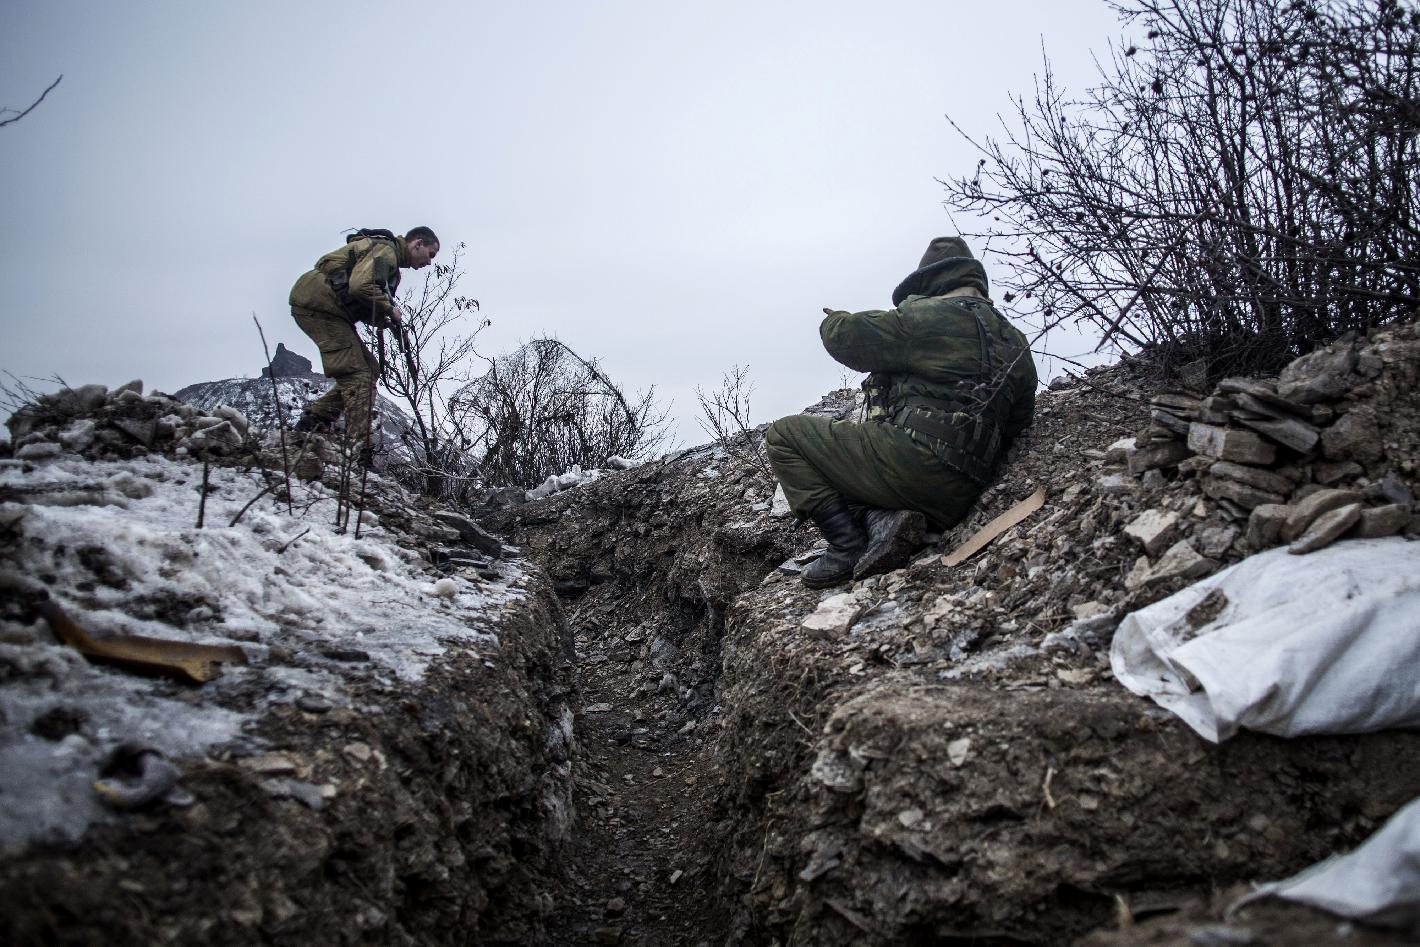 US warns cost of Russian actions in Ukraine will 'rise'